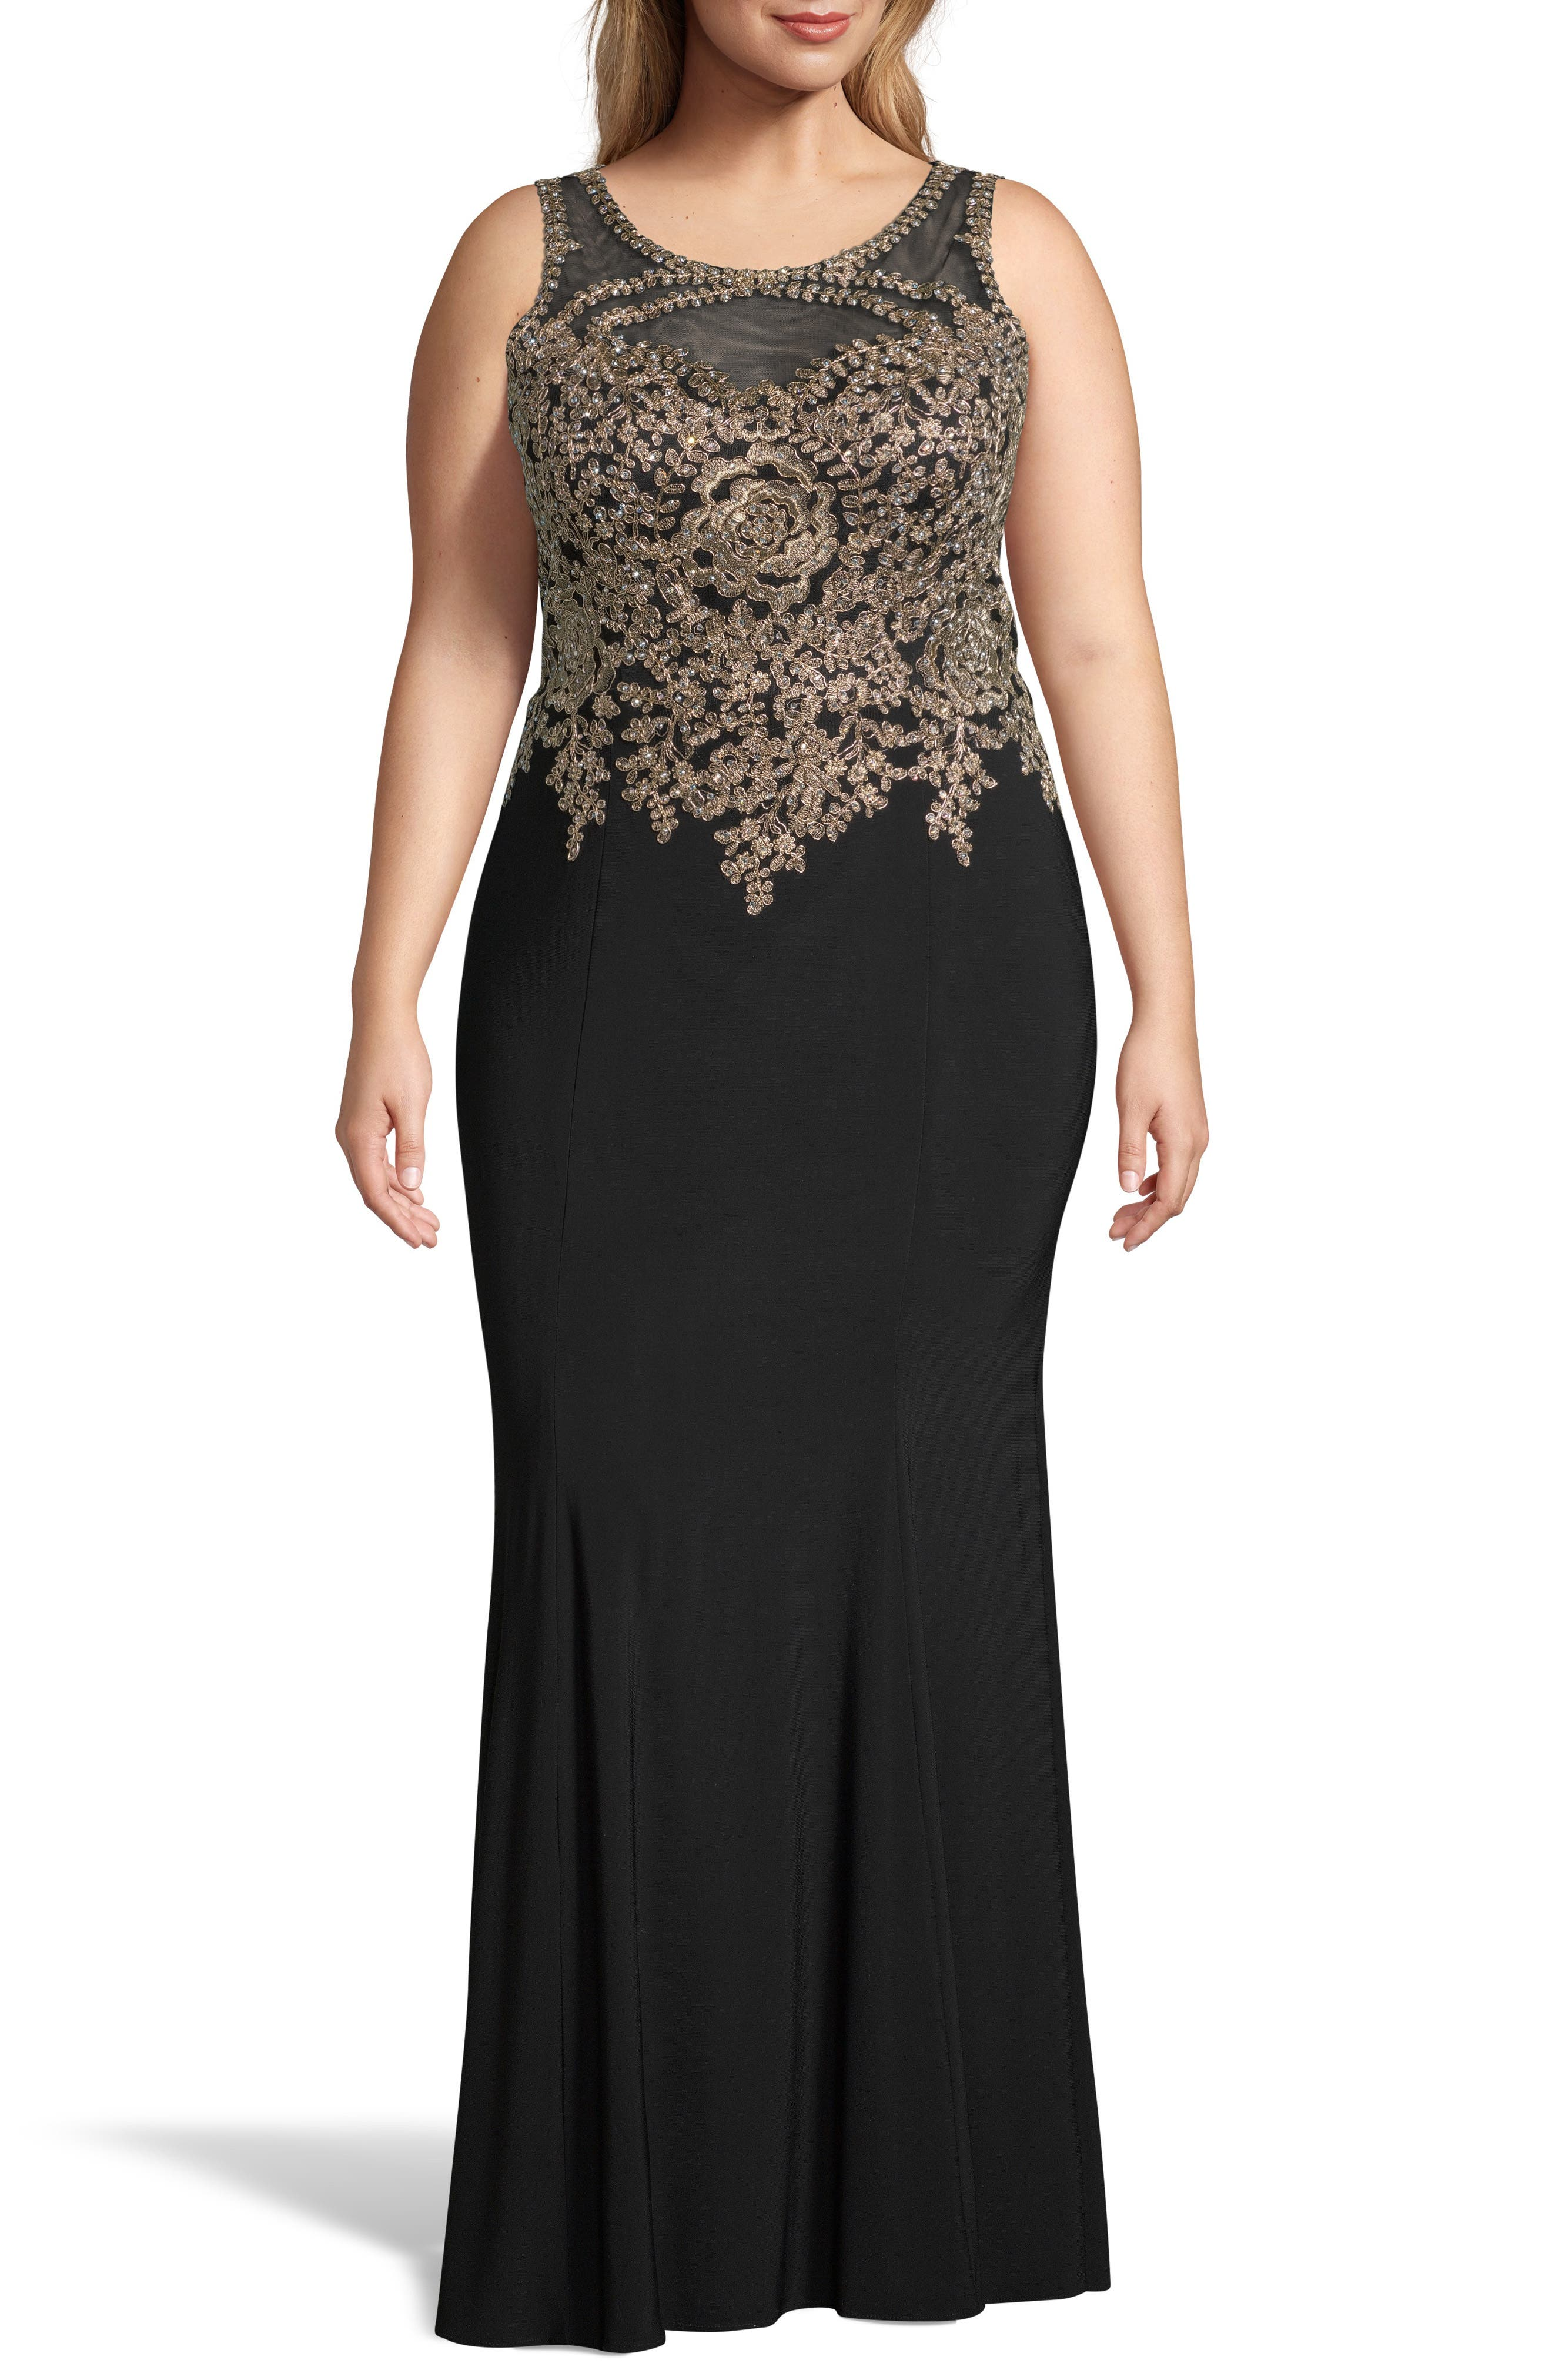 Plus Size Xscape Golden Embroidered Bodice Evening Dress, Black